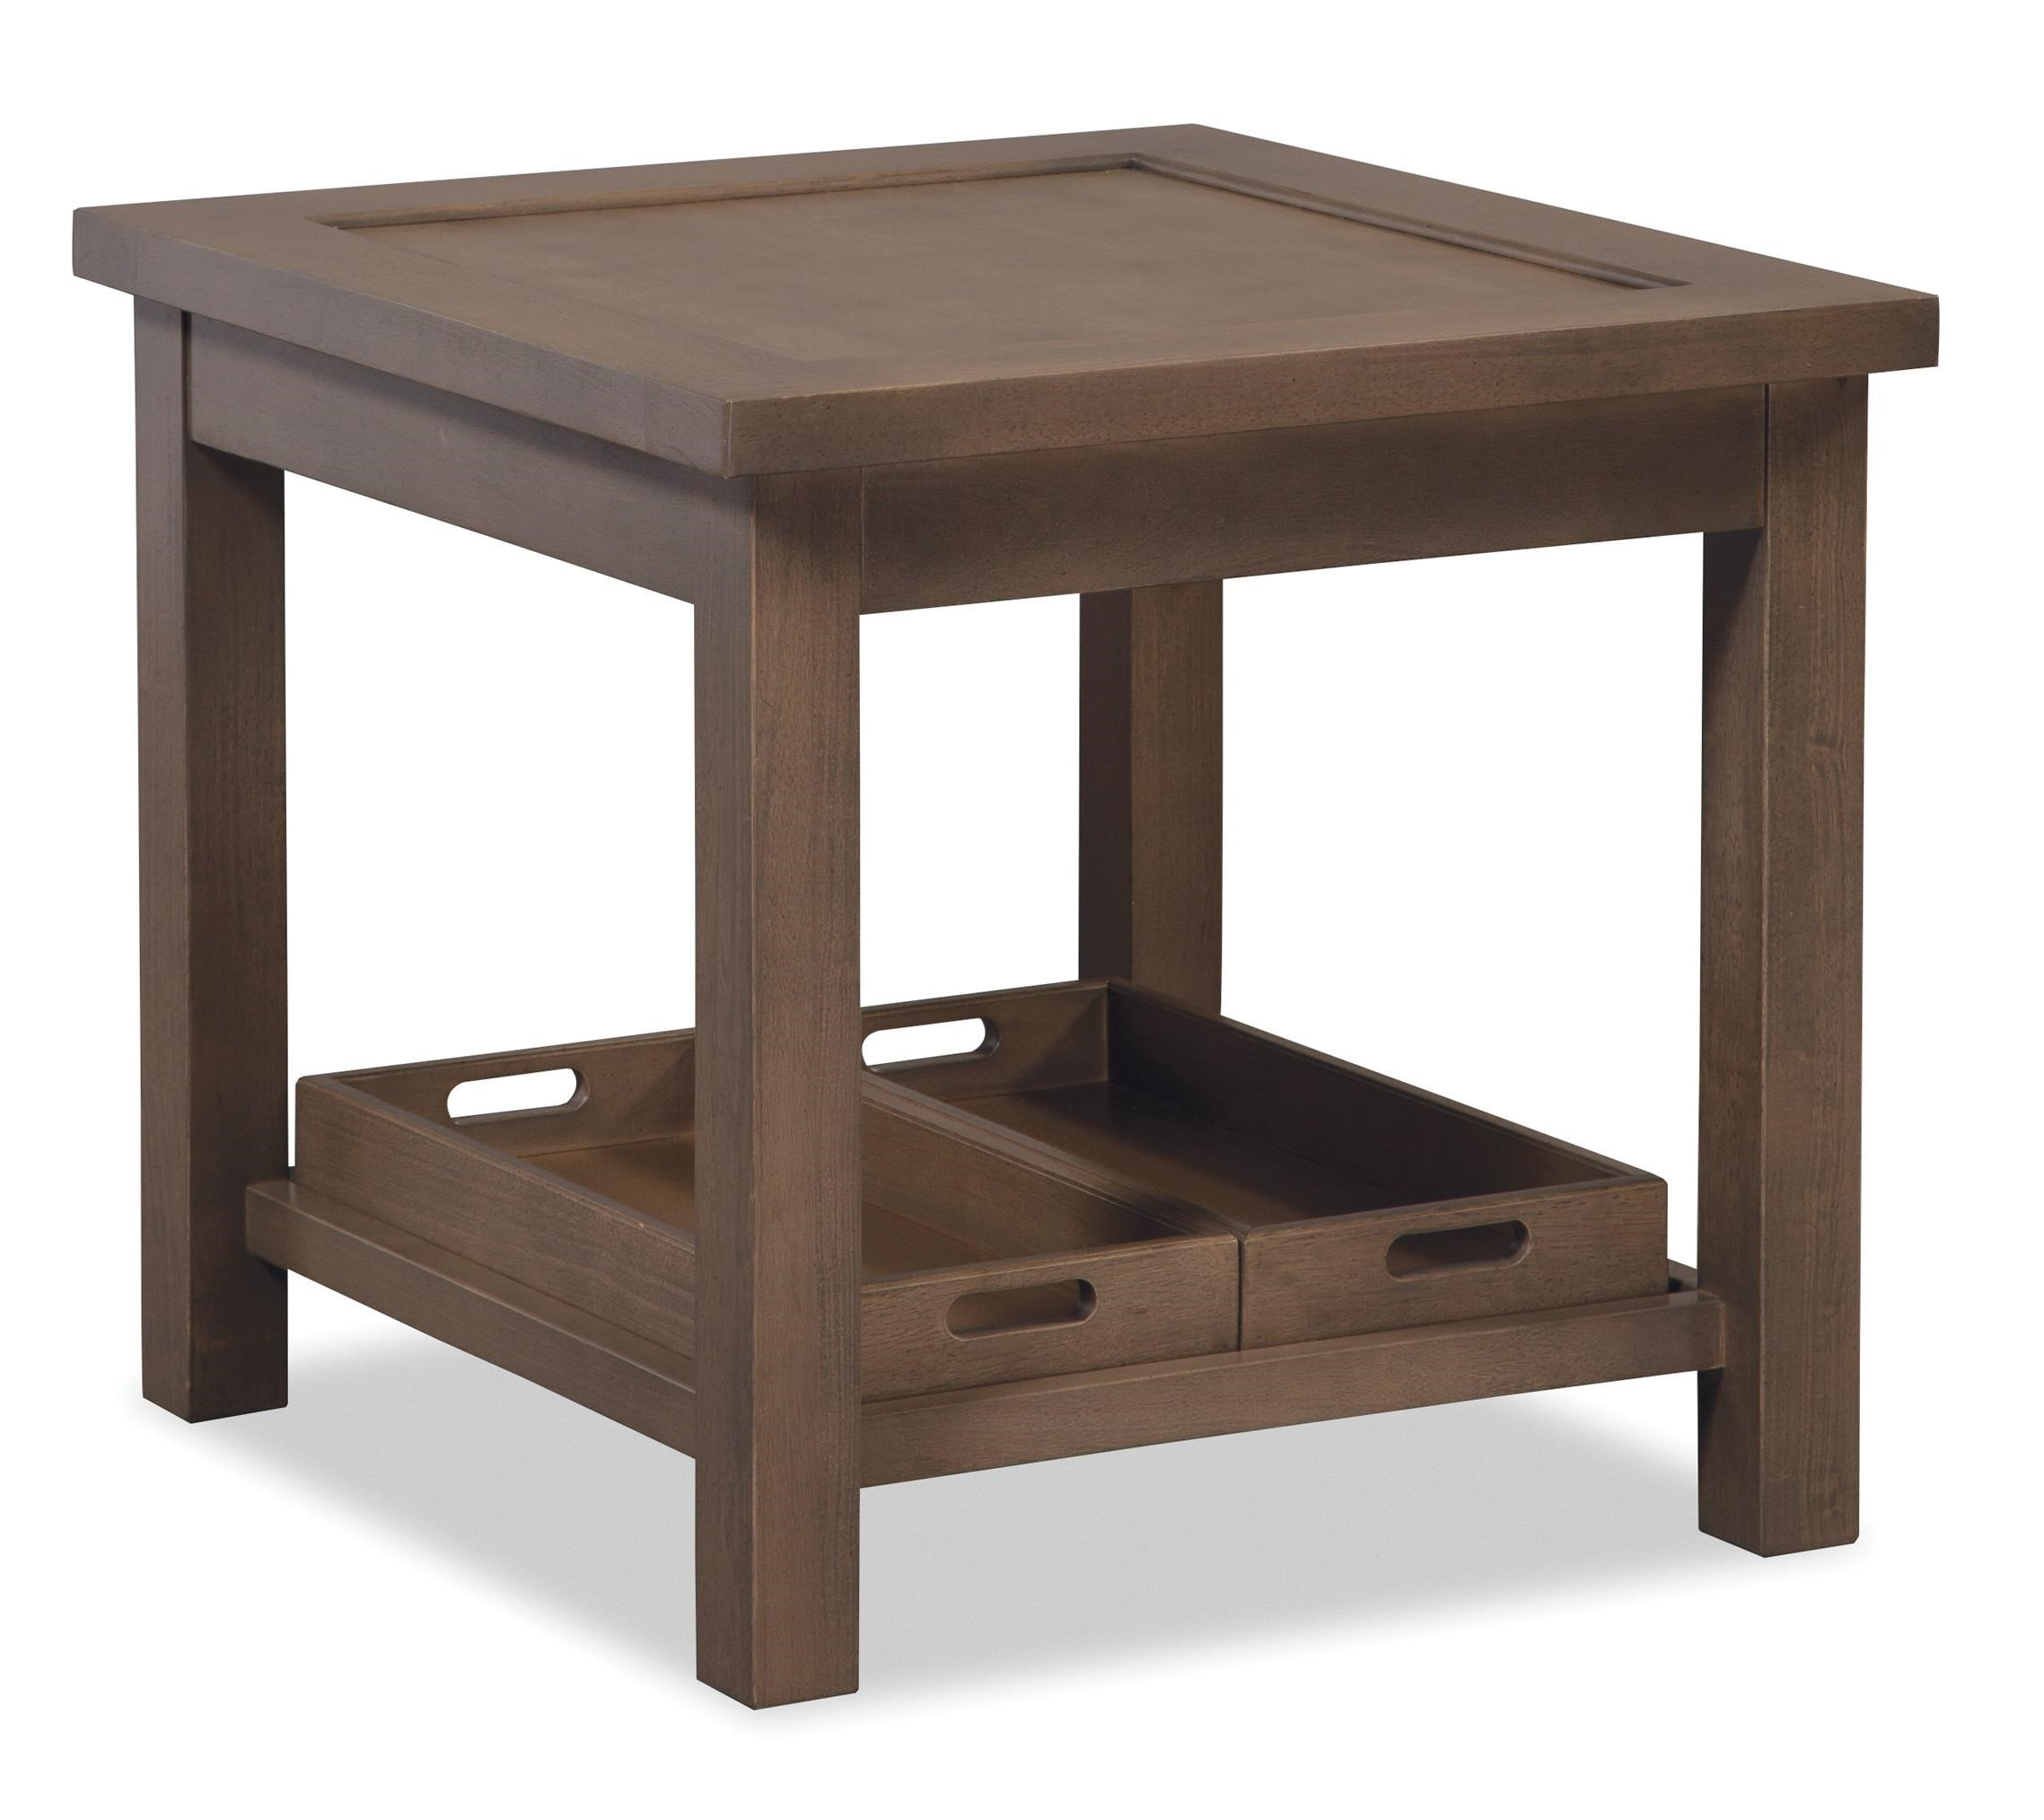 craftmaster craftmaster accent tables end table with two removable storage trays miskelly furniture end tables